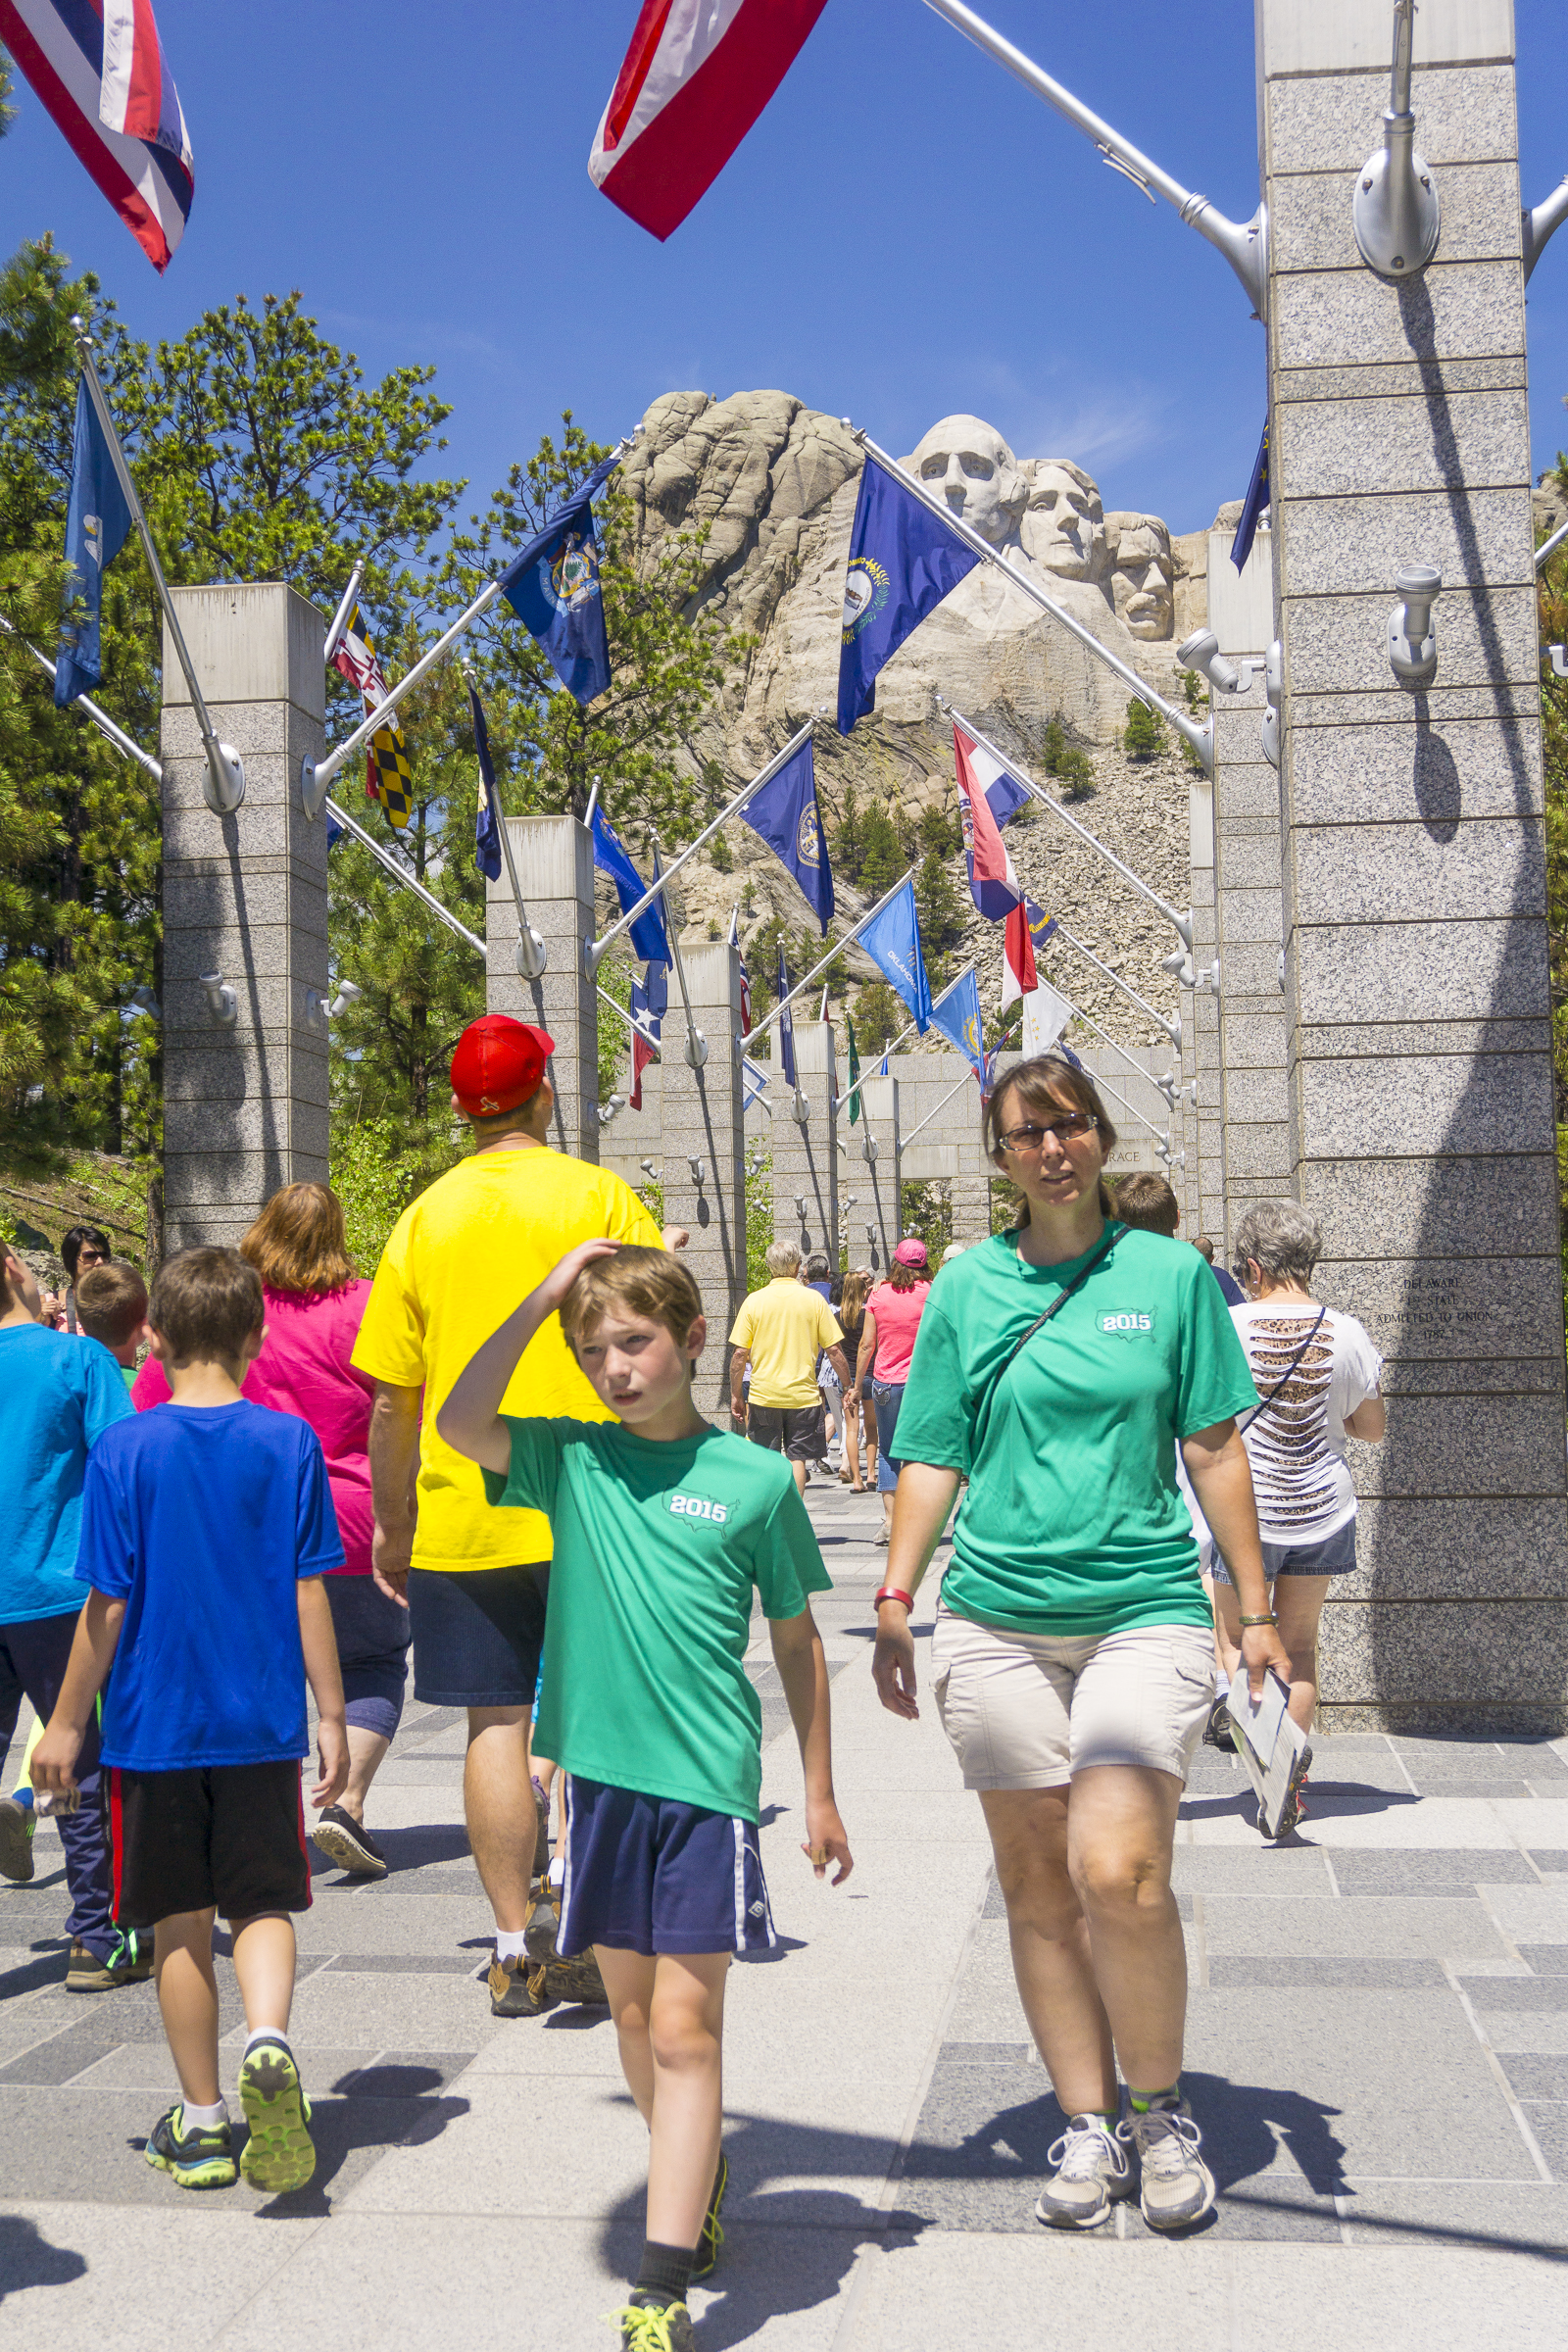 Flags adorning the entryway pillars at Mount Rushmore National Memorial